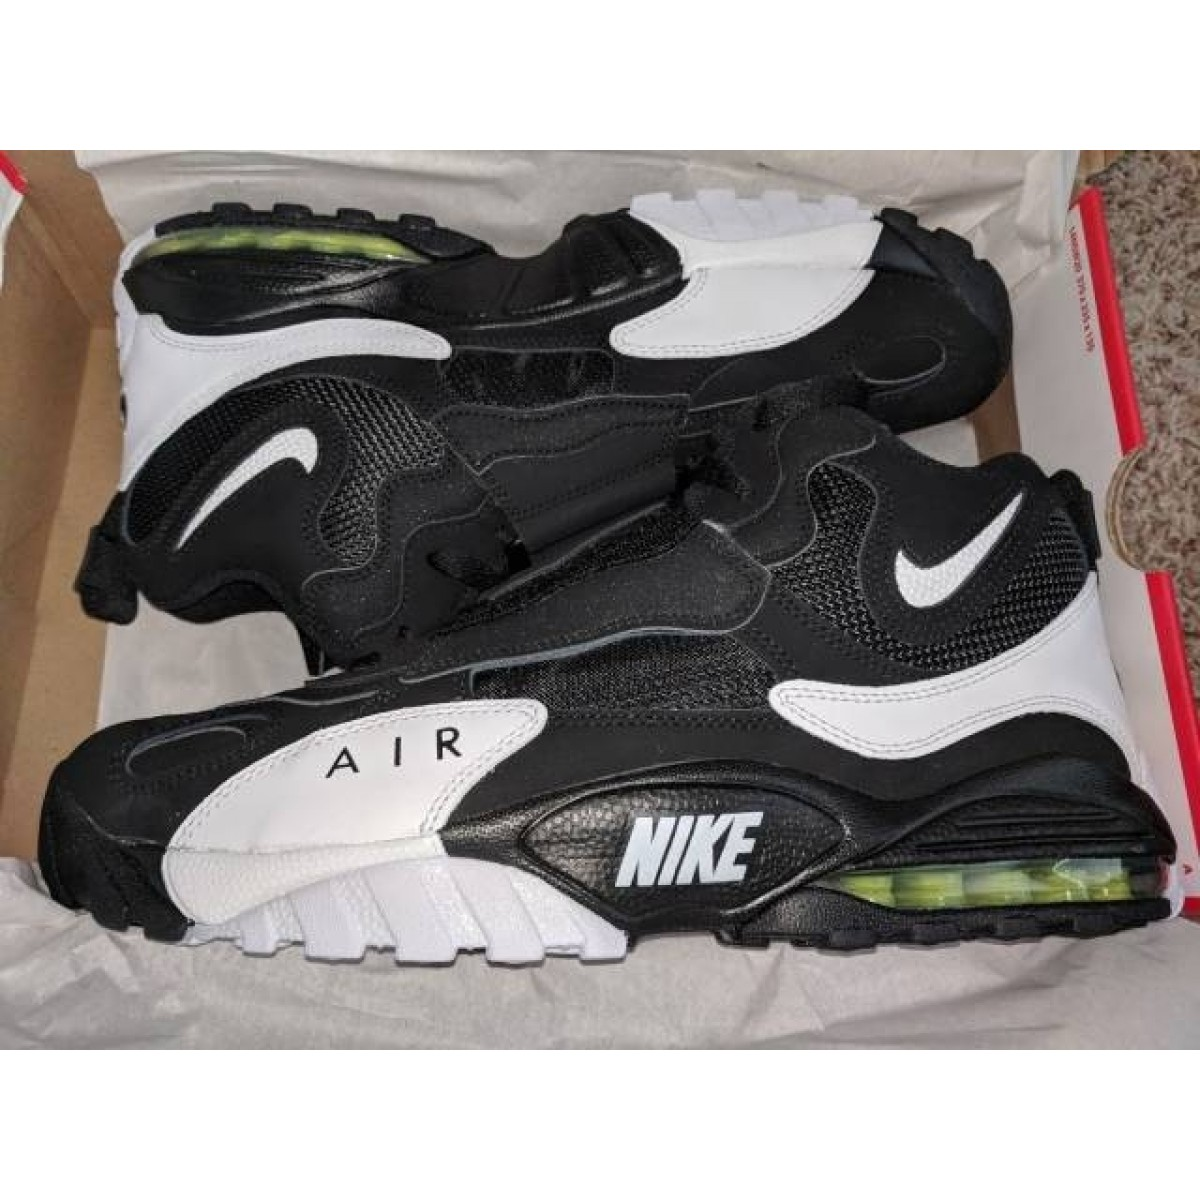 new style c4721 3a423 Nike Air Max Speed Turf White/Black/Voltage Yellow 49ers Shoes